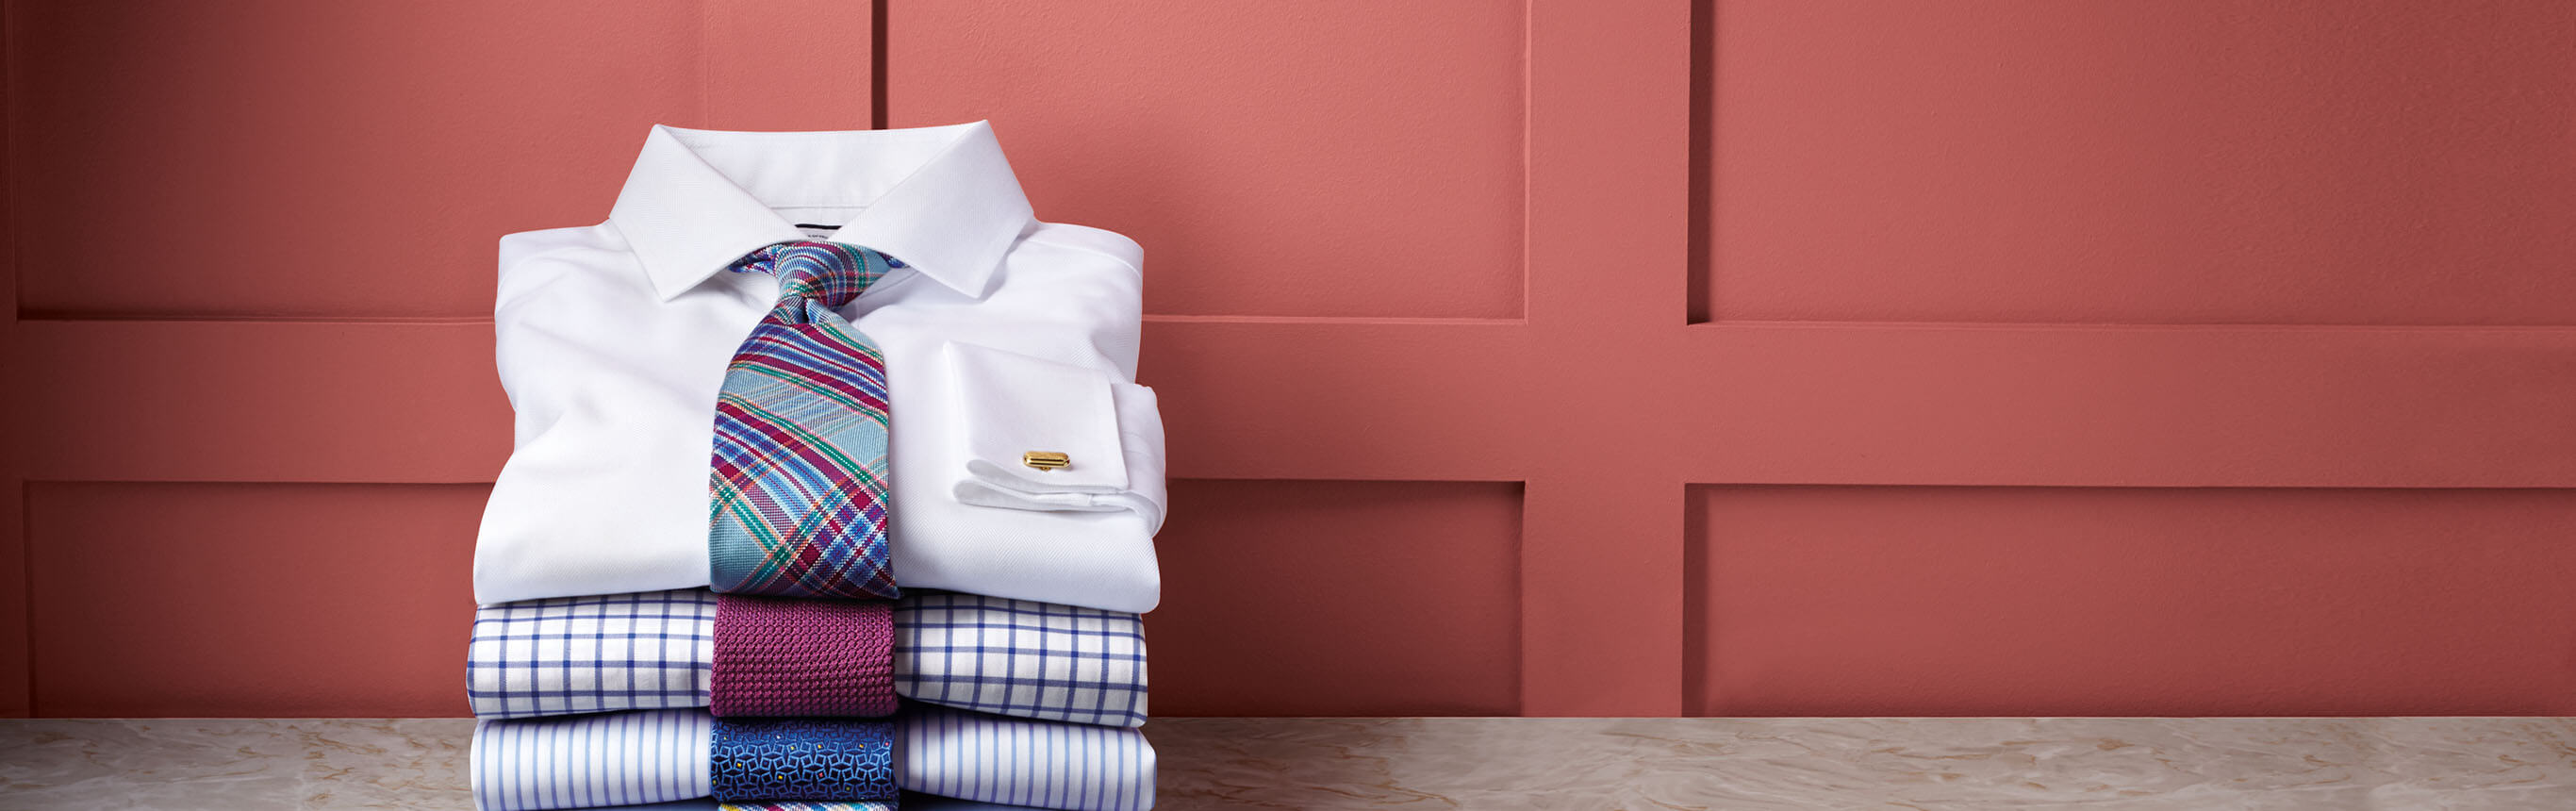 Image of stack of non iron shirts